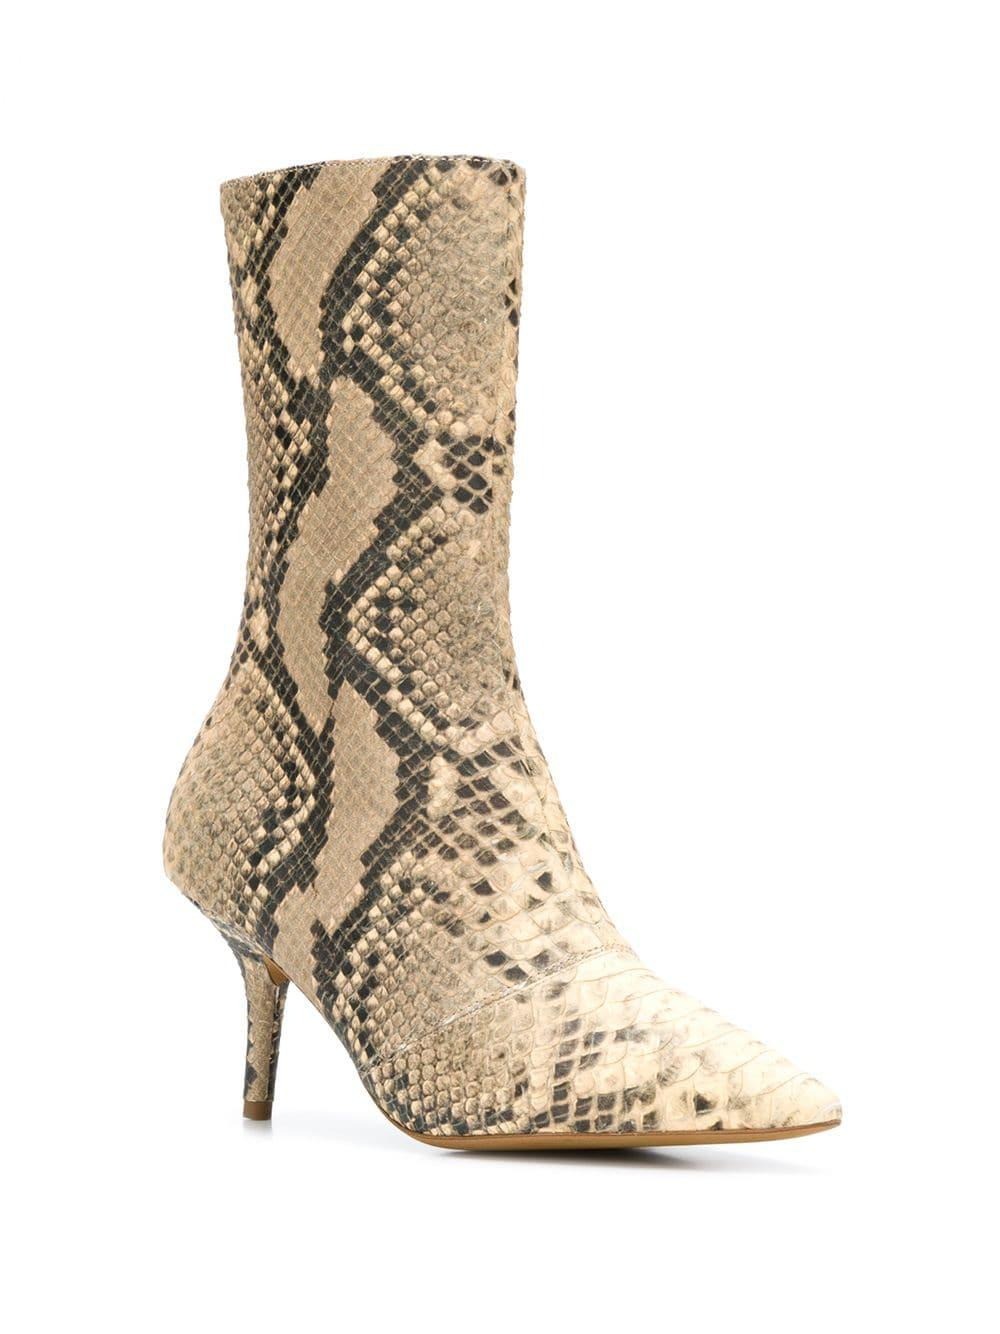 25705f90086 Yeezy Faux Snake Effect Boots in Natural - Lyst